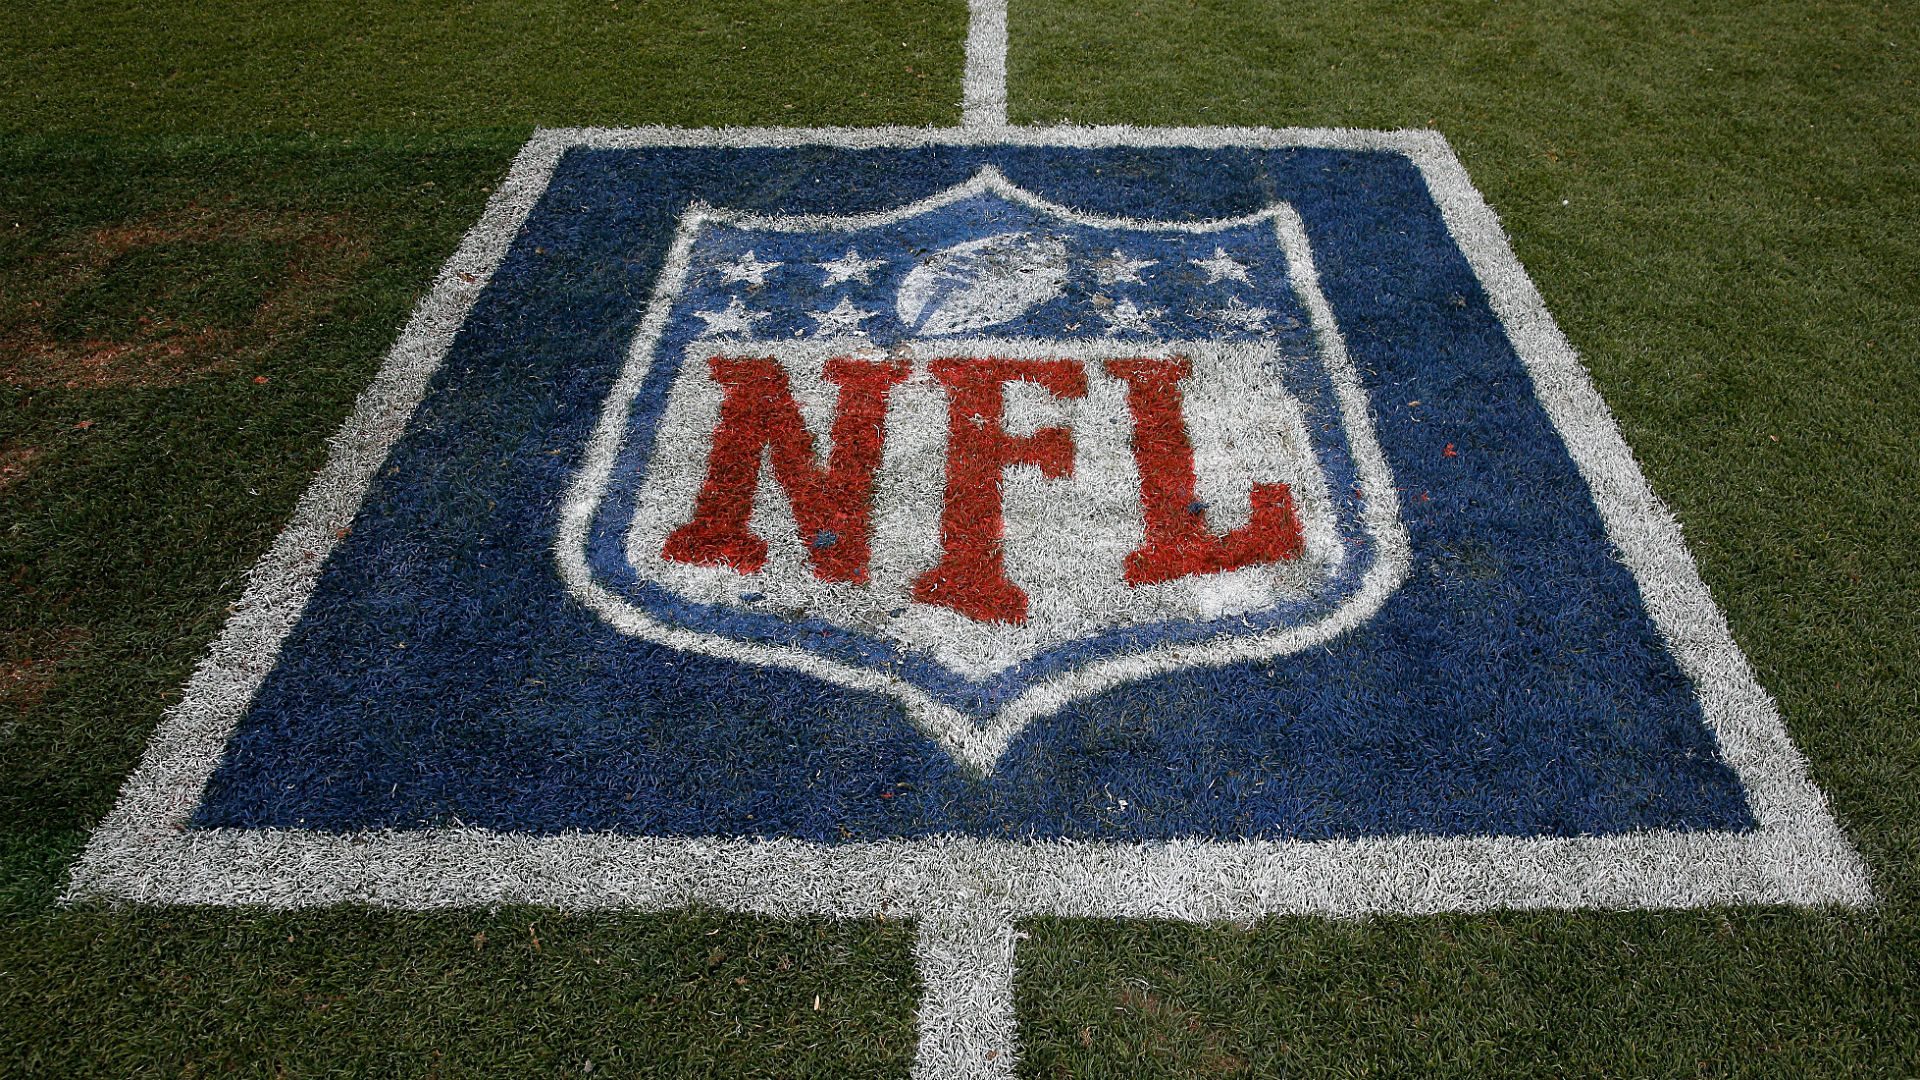 NFL-NFLPA talks about new CBA set to ramp up, report says